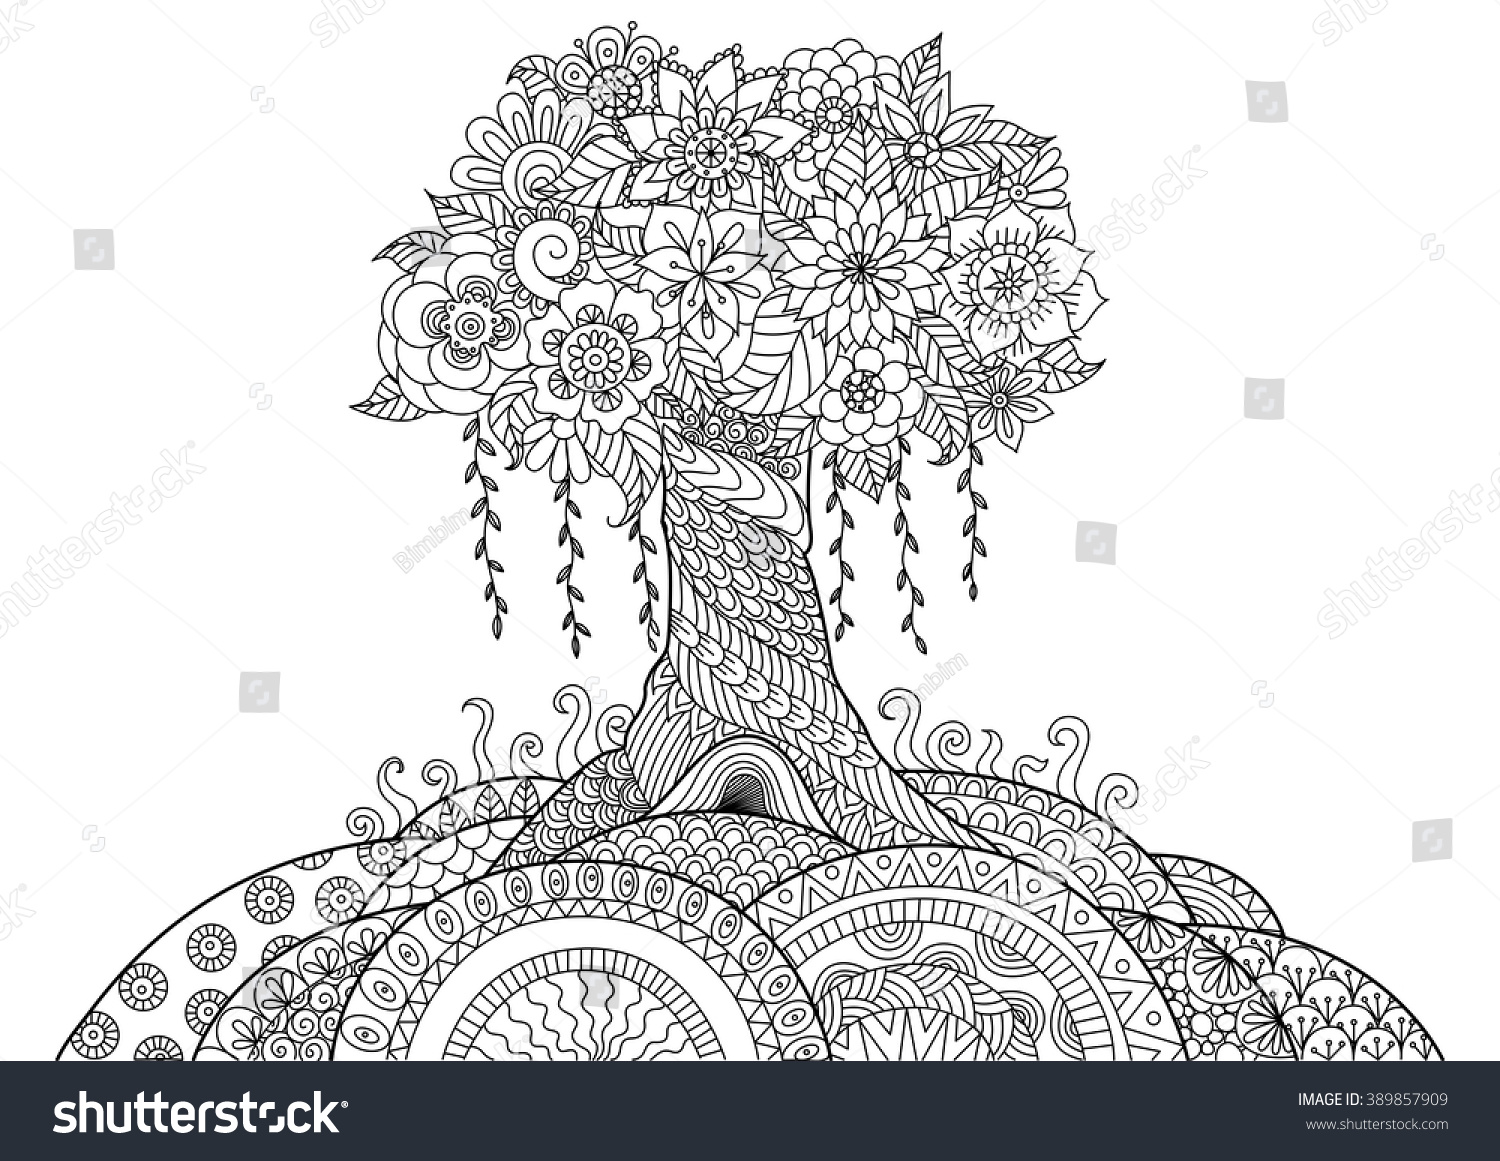 Line Art Media Design : Abstract tree on hill line art stock vector